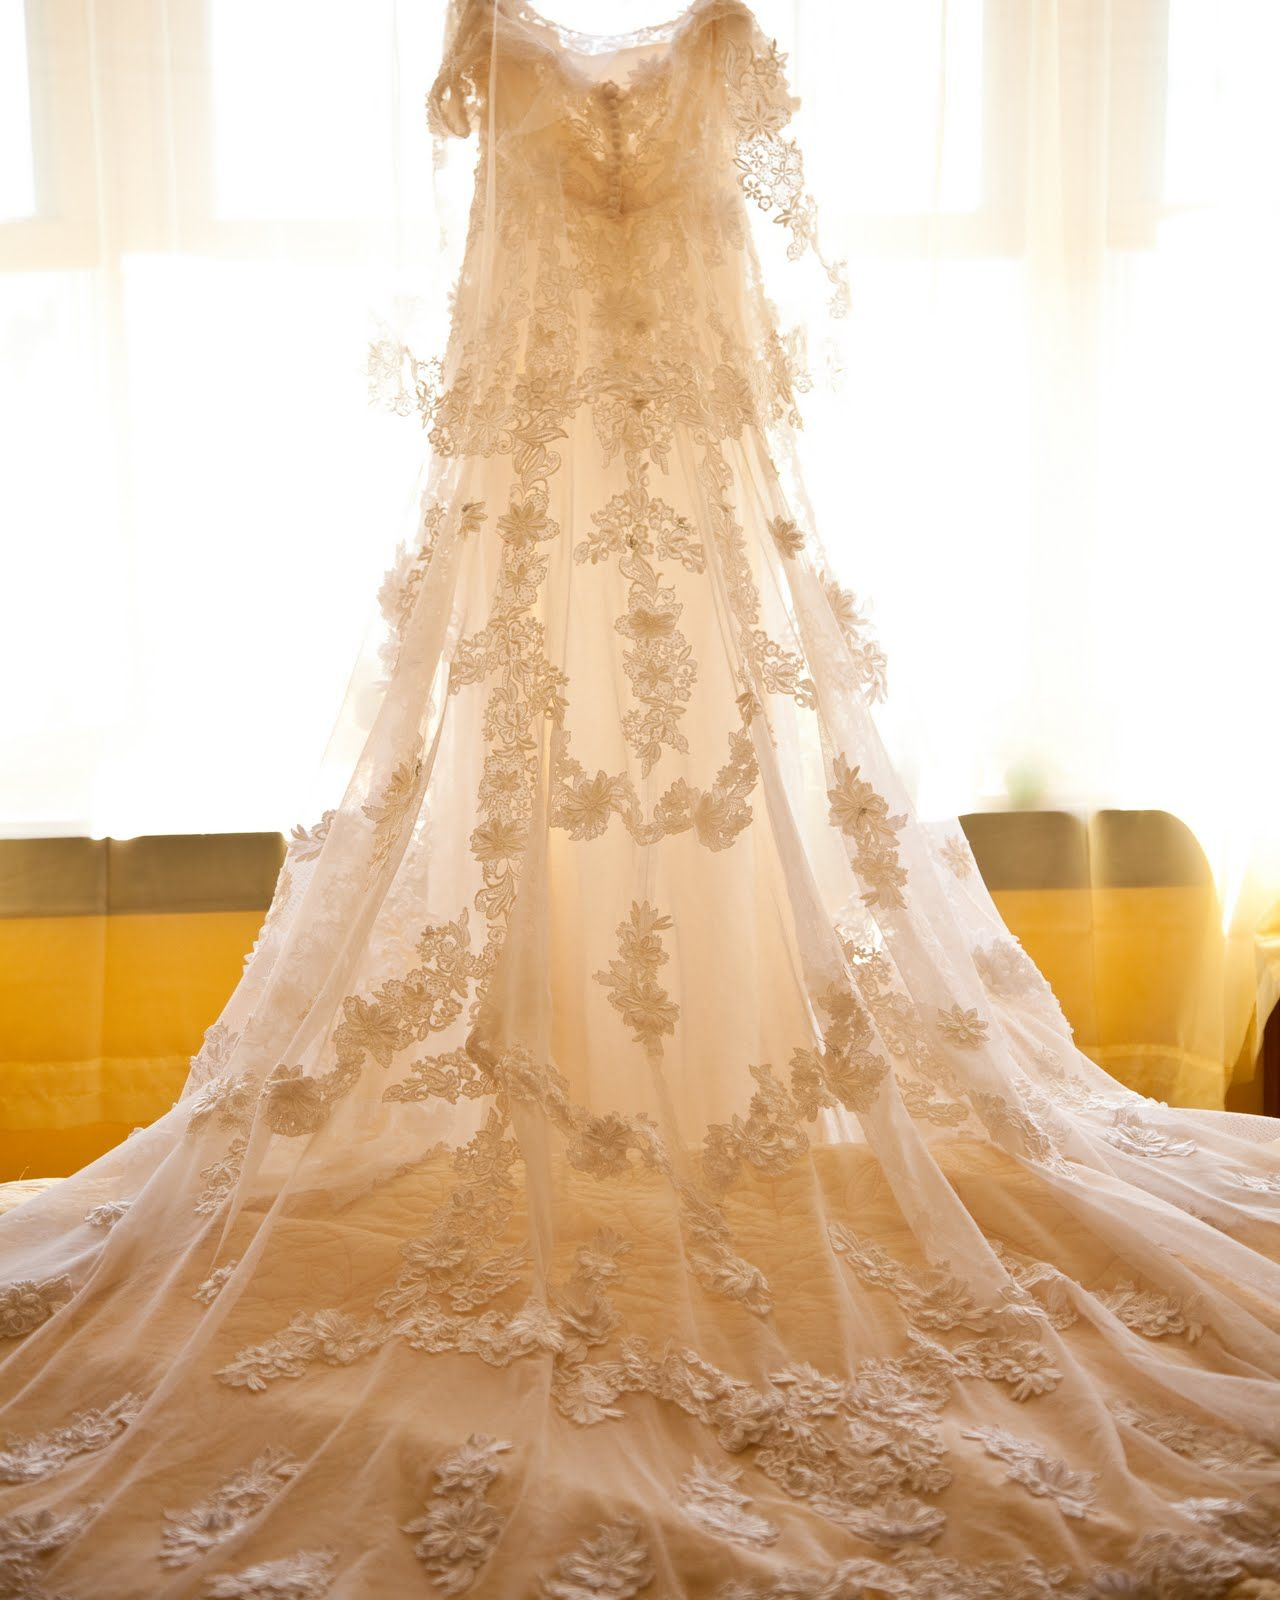 Italian Lace Is Delicate And Simply Beautiful, Like True